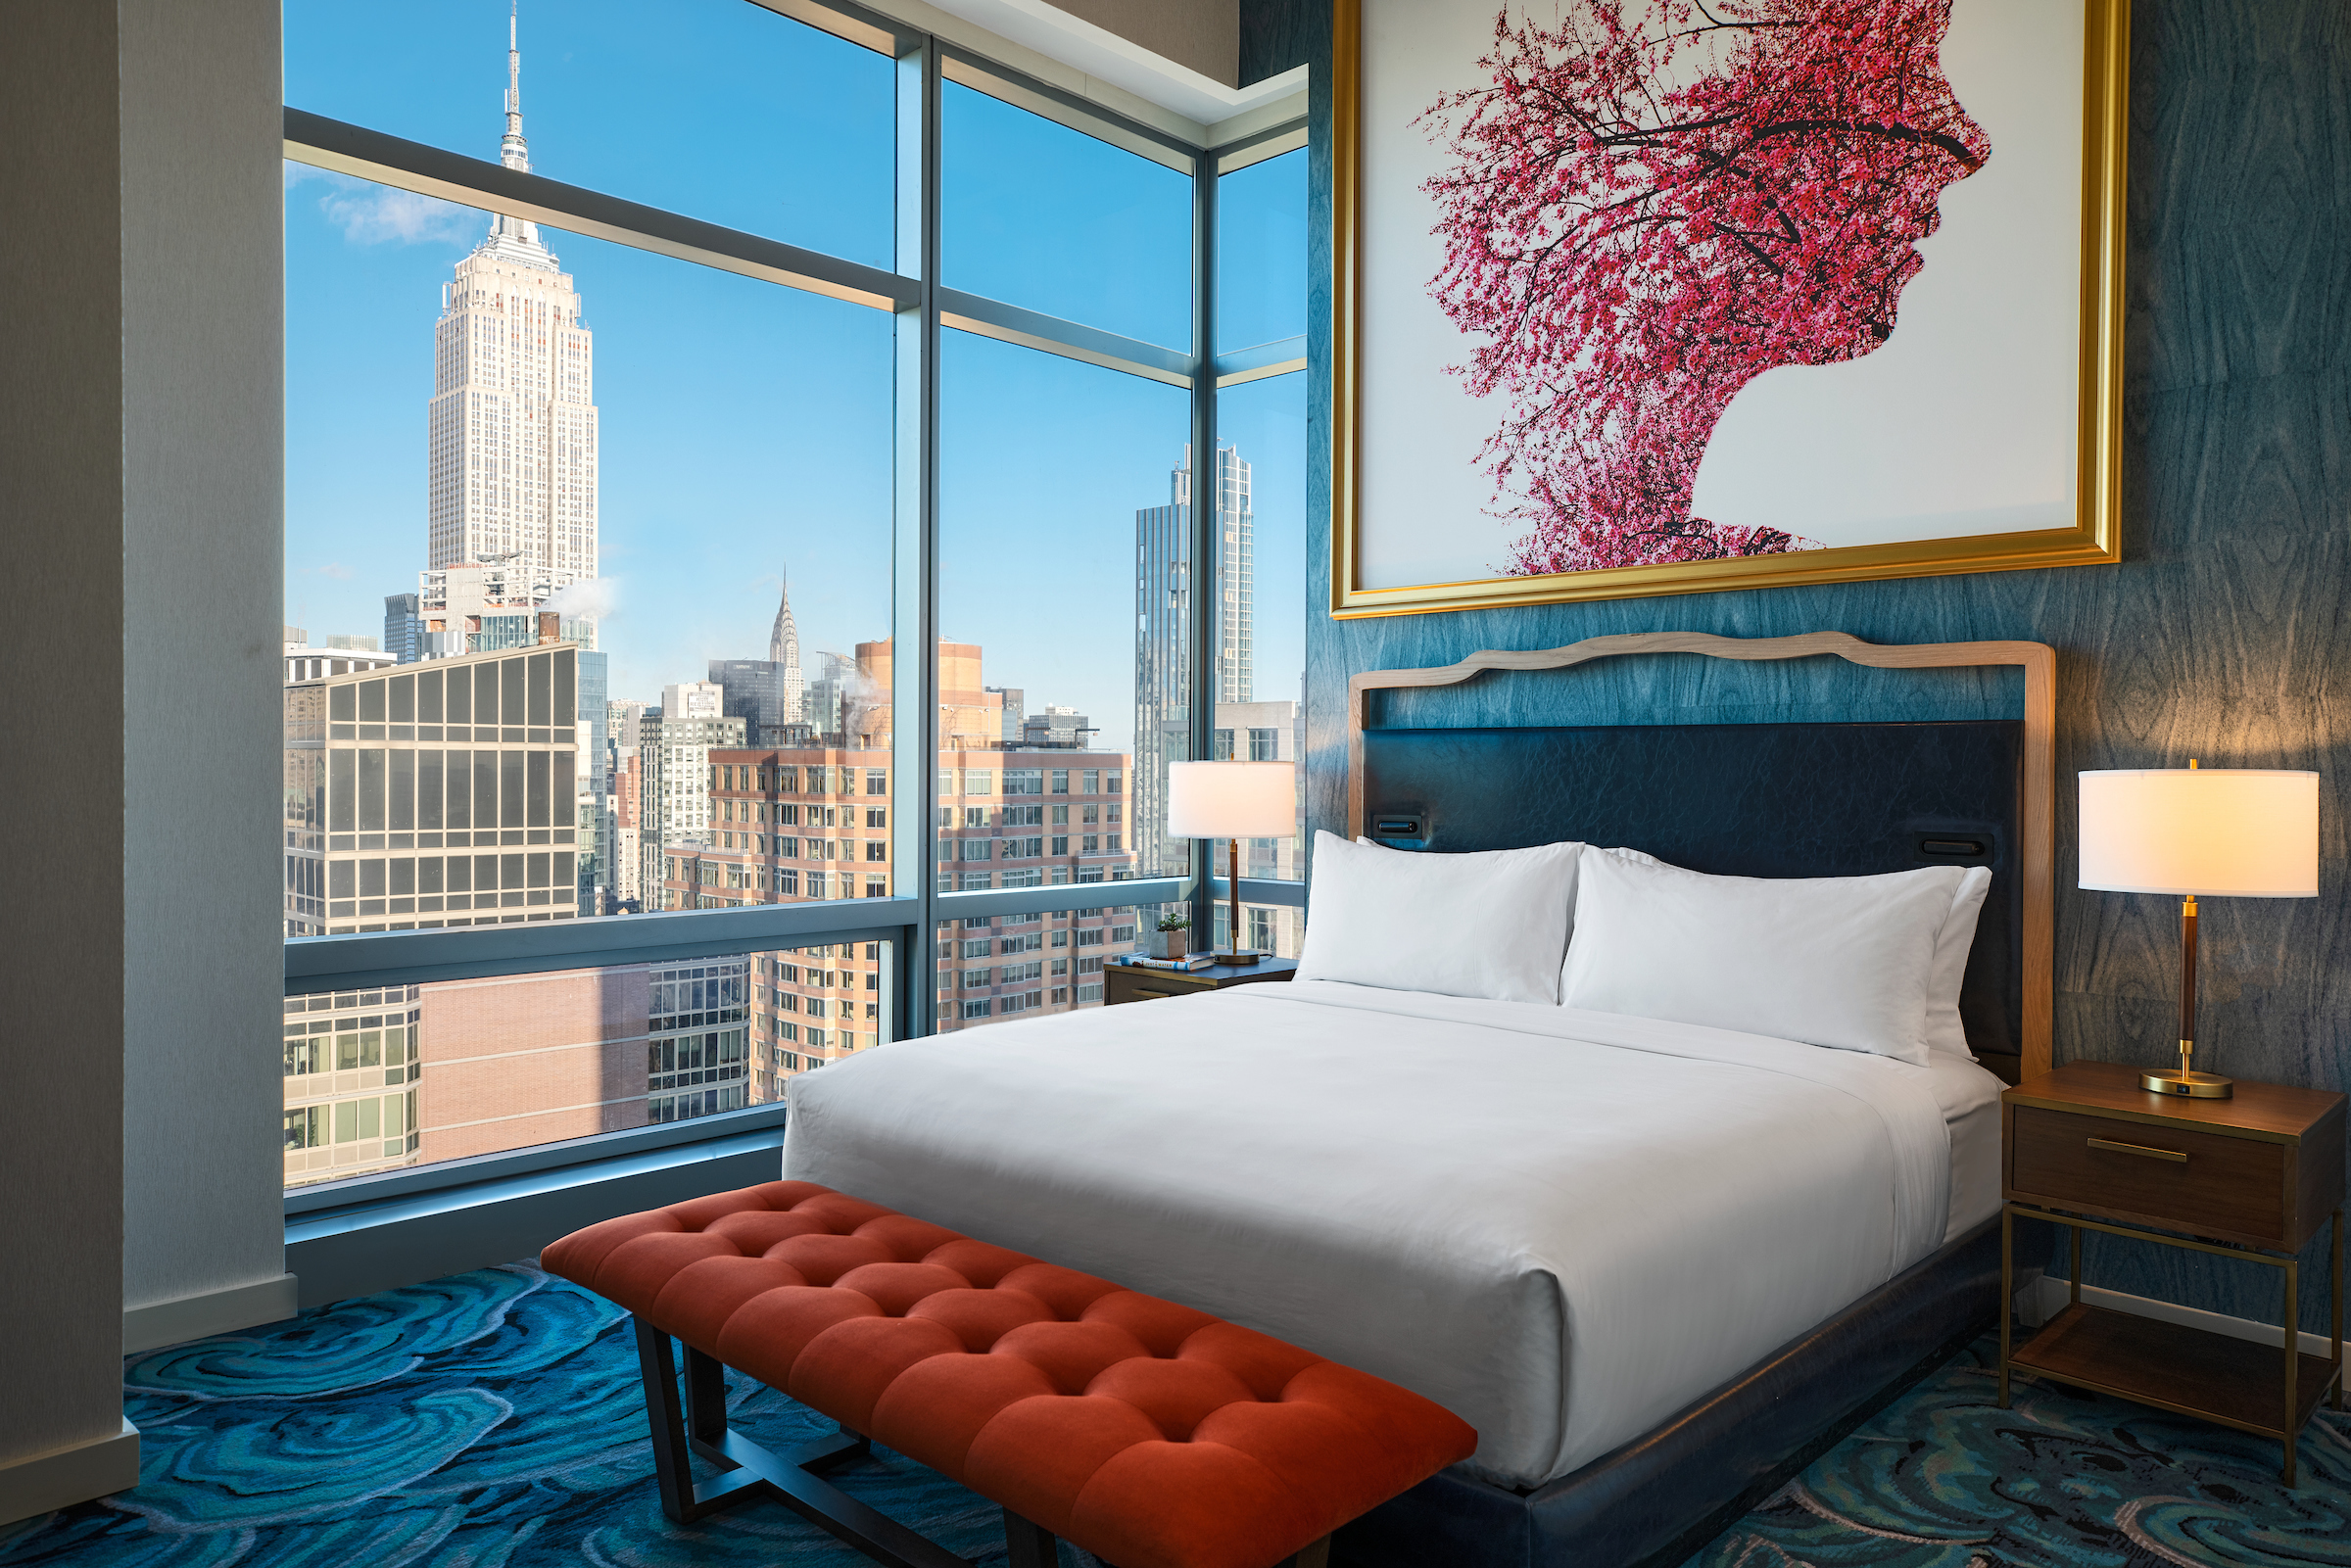 Renaissance Hotels Grows Nyc Footprint With Debut Of Renaissance New York Chelsea Hotel Inspiring Spontaneous Discoveries At Every Turn Marriott News Center